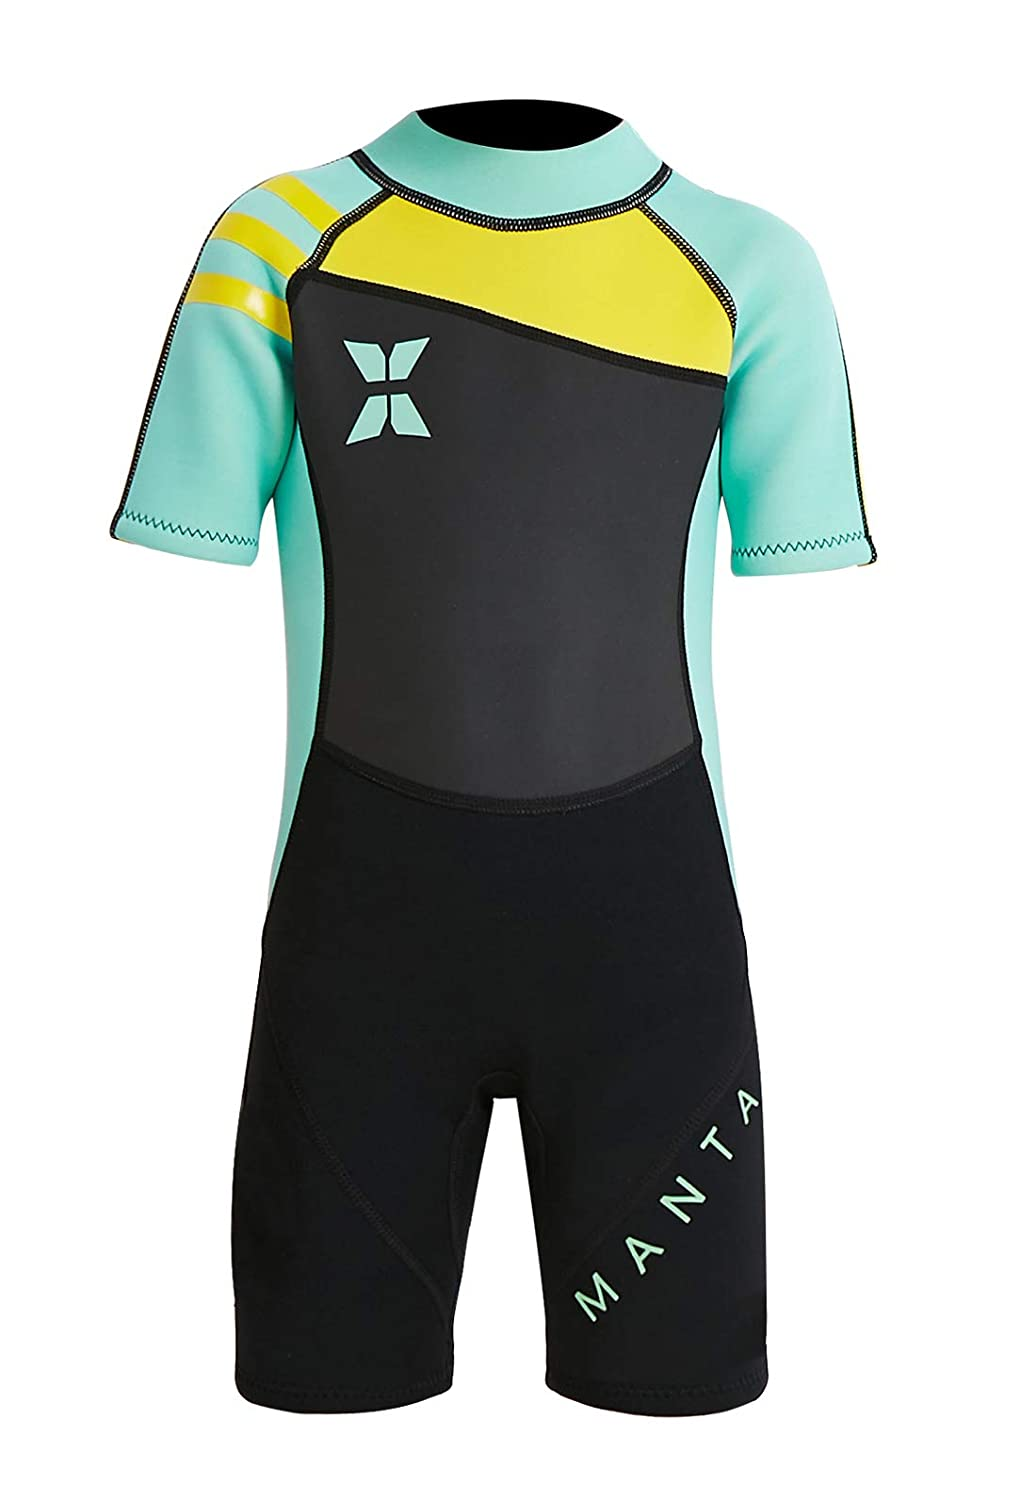 Dive & Sail Kids 2.5 MM Warm Wetsuit One Piece UV保護Shorty Suit B07DJ6LRMY グリーン XX-Large